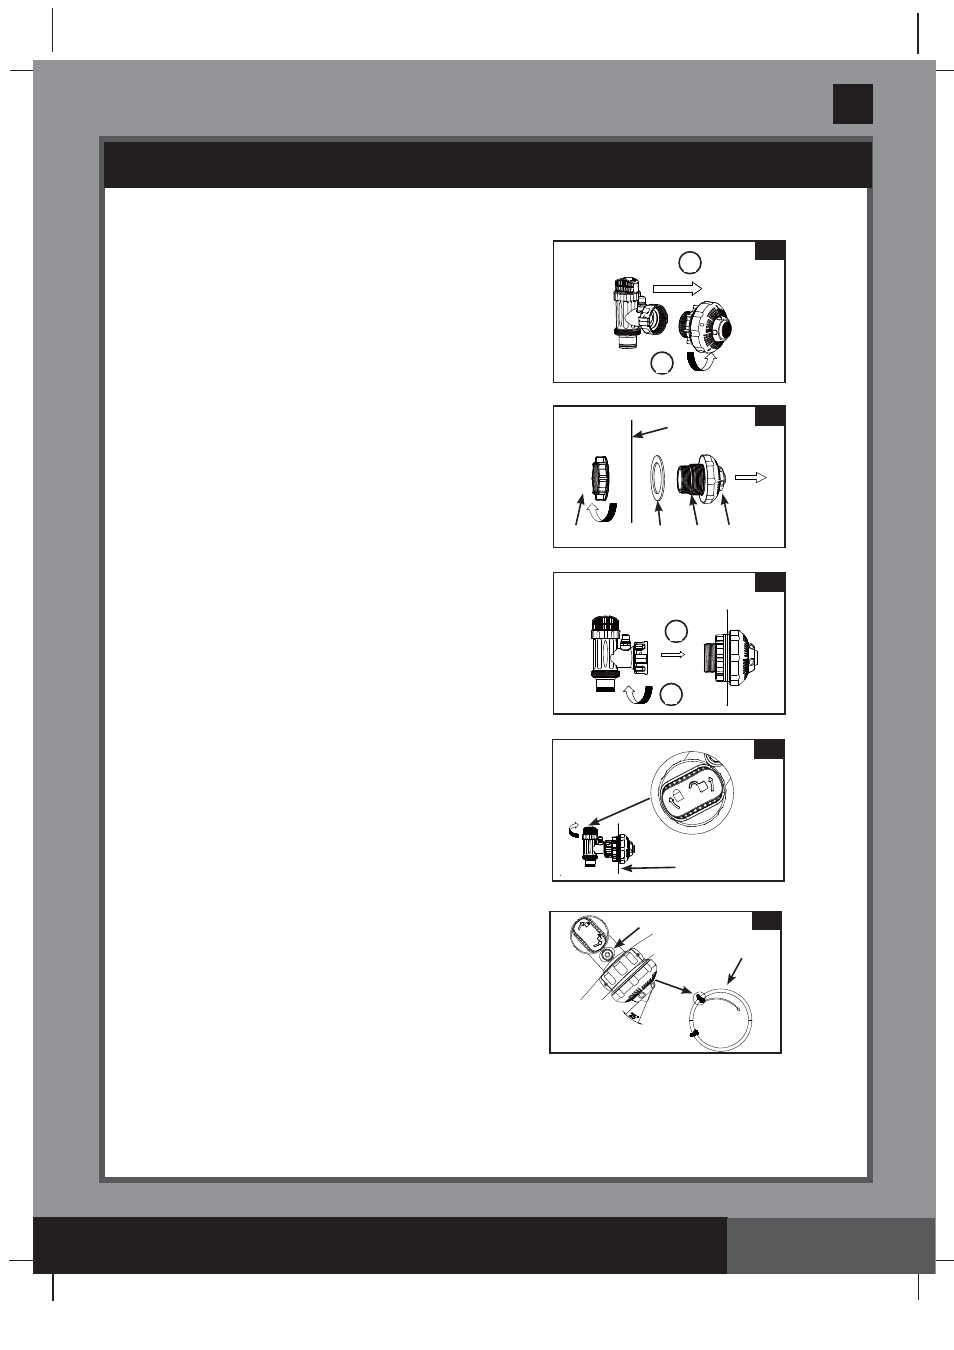 Save These Instructions